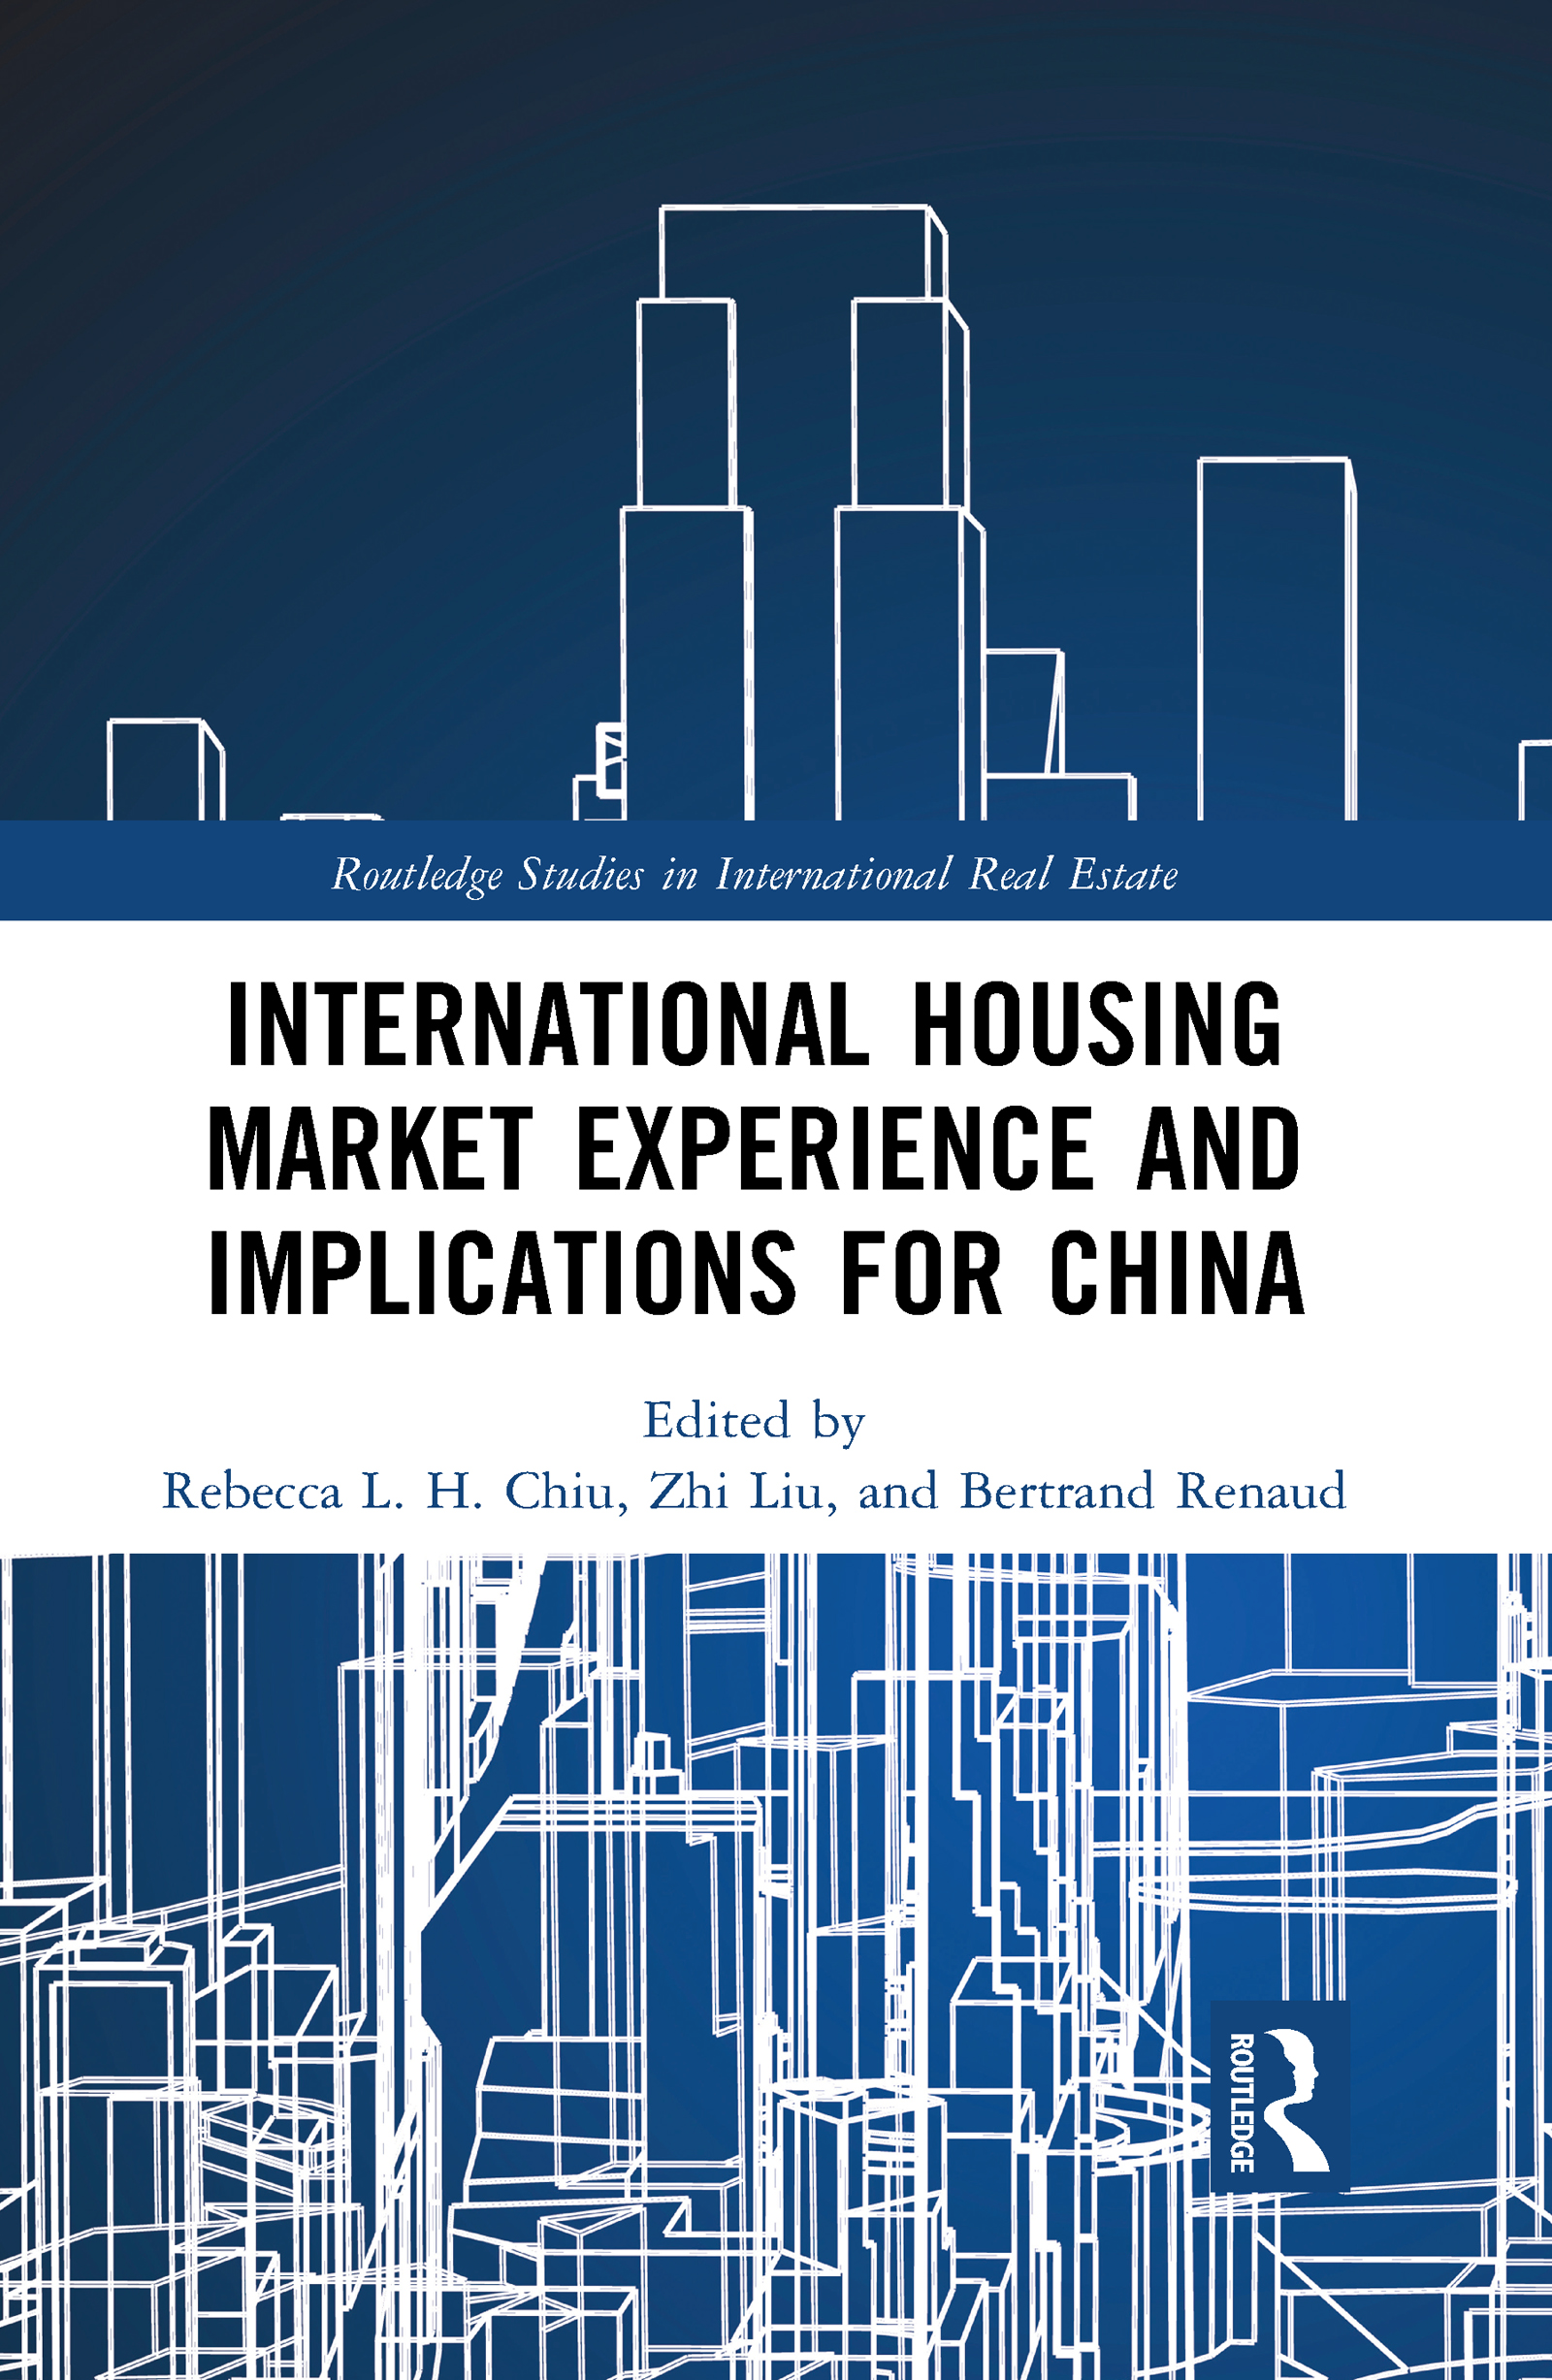 International Housing Market Experience and Implications for China